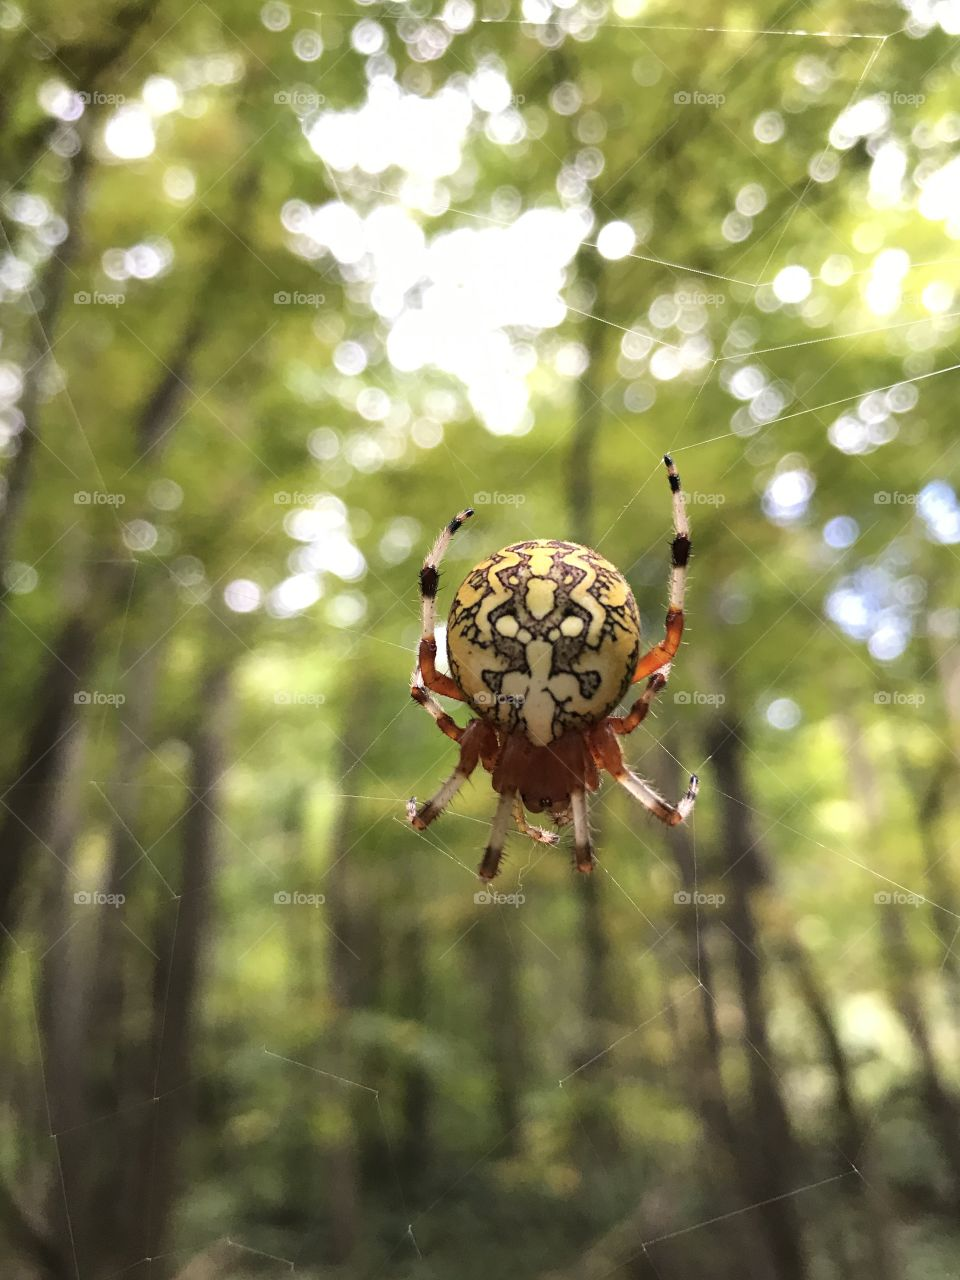 Spider waiting for its prey.